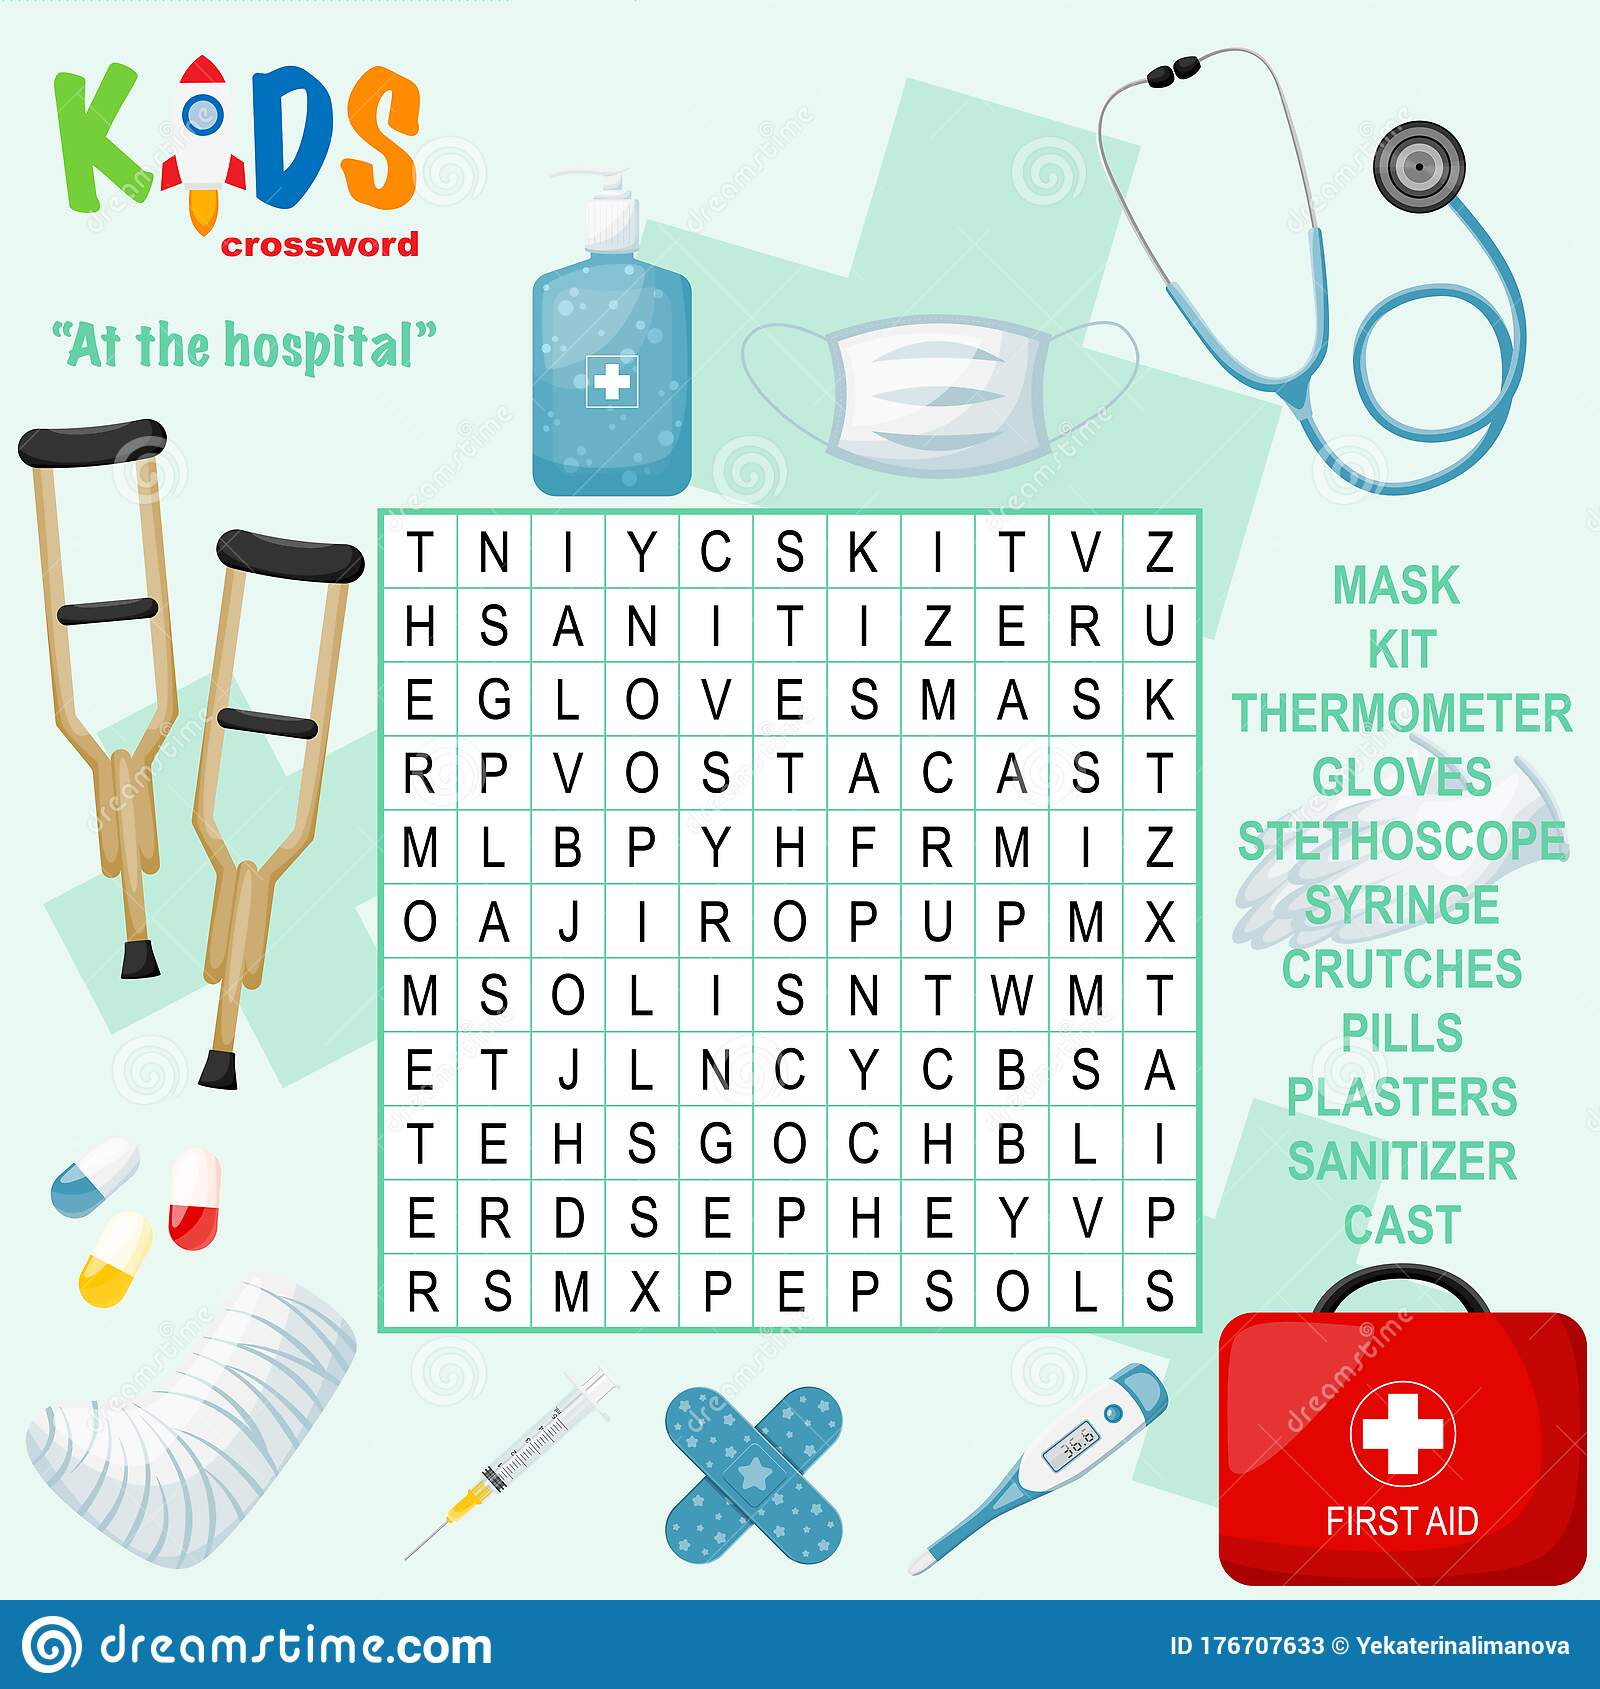 First Aid Supplies Crossword